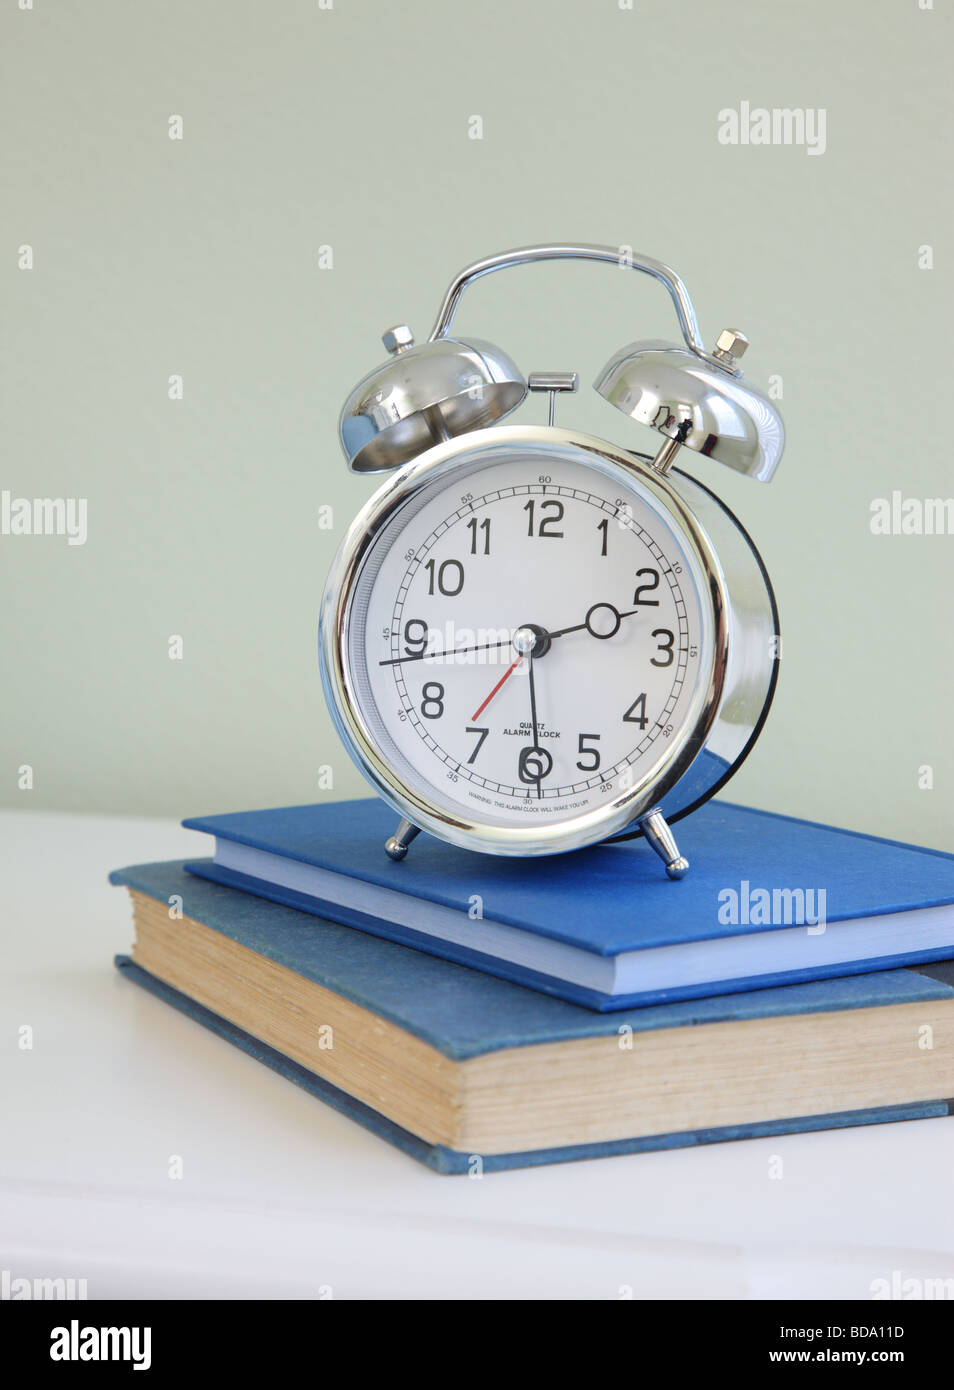 Alarm clock on stack of books - Stock Image